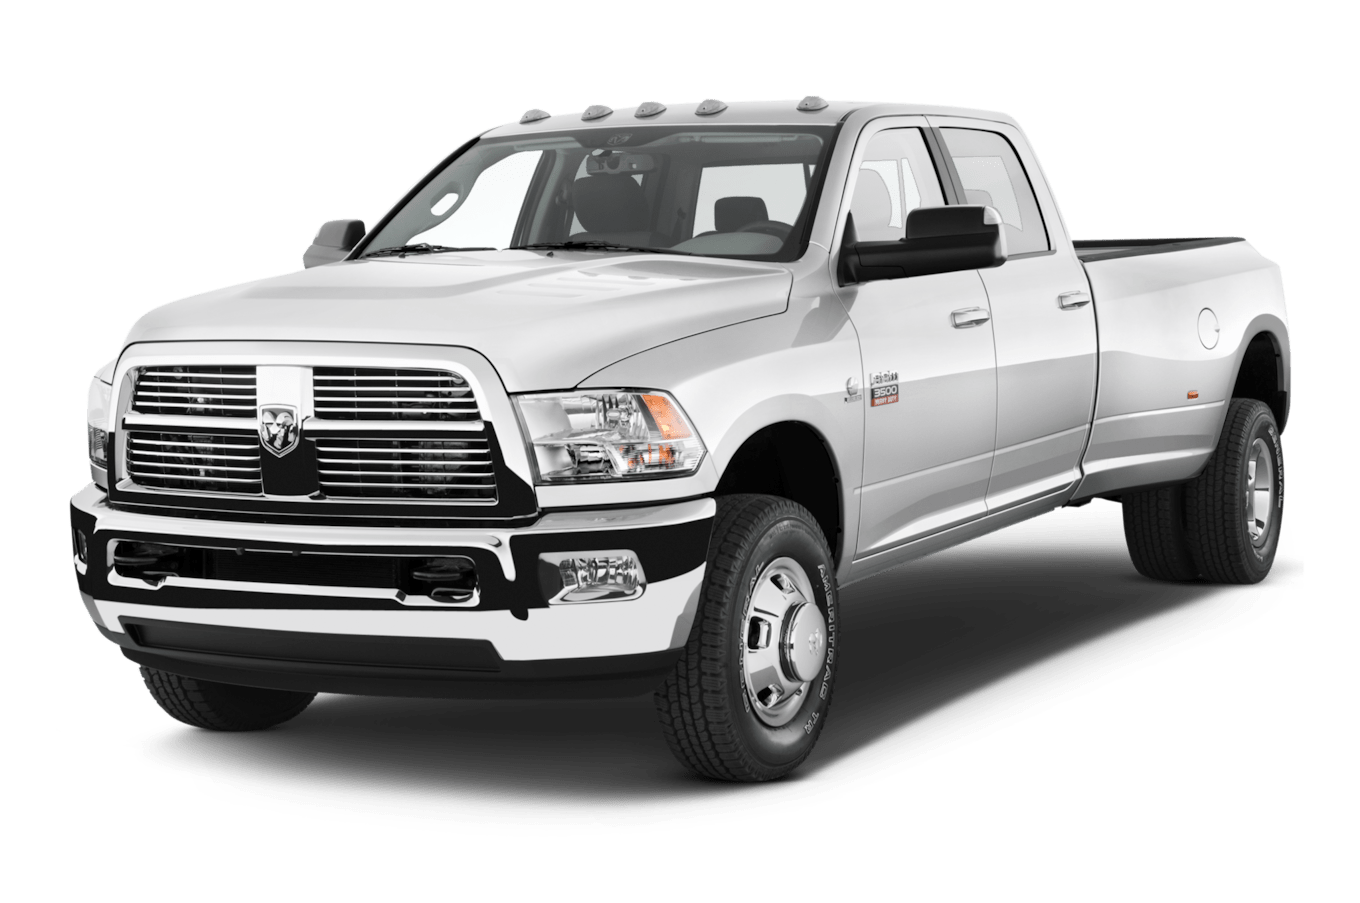 2003 Dodge Ram 3500 Reviews and Rating